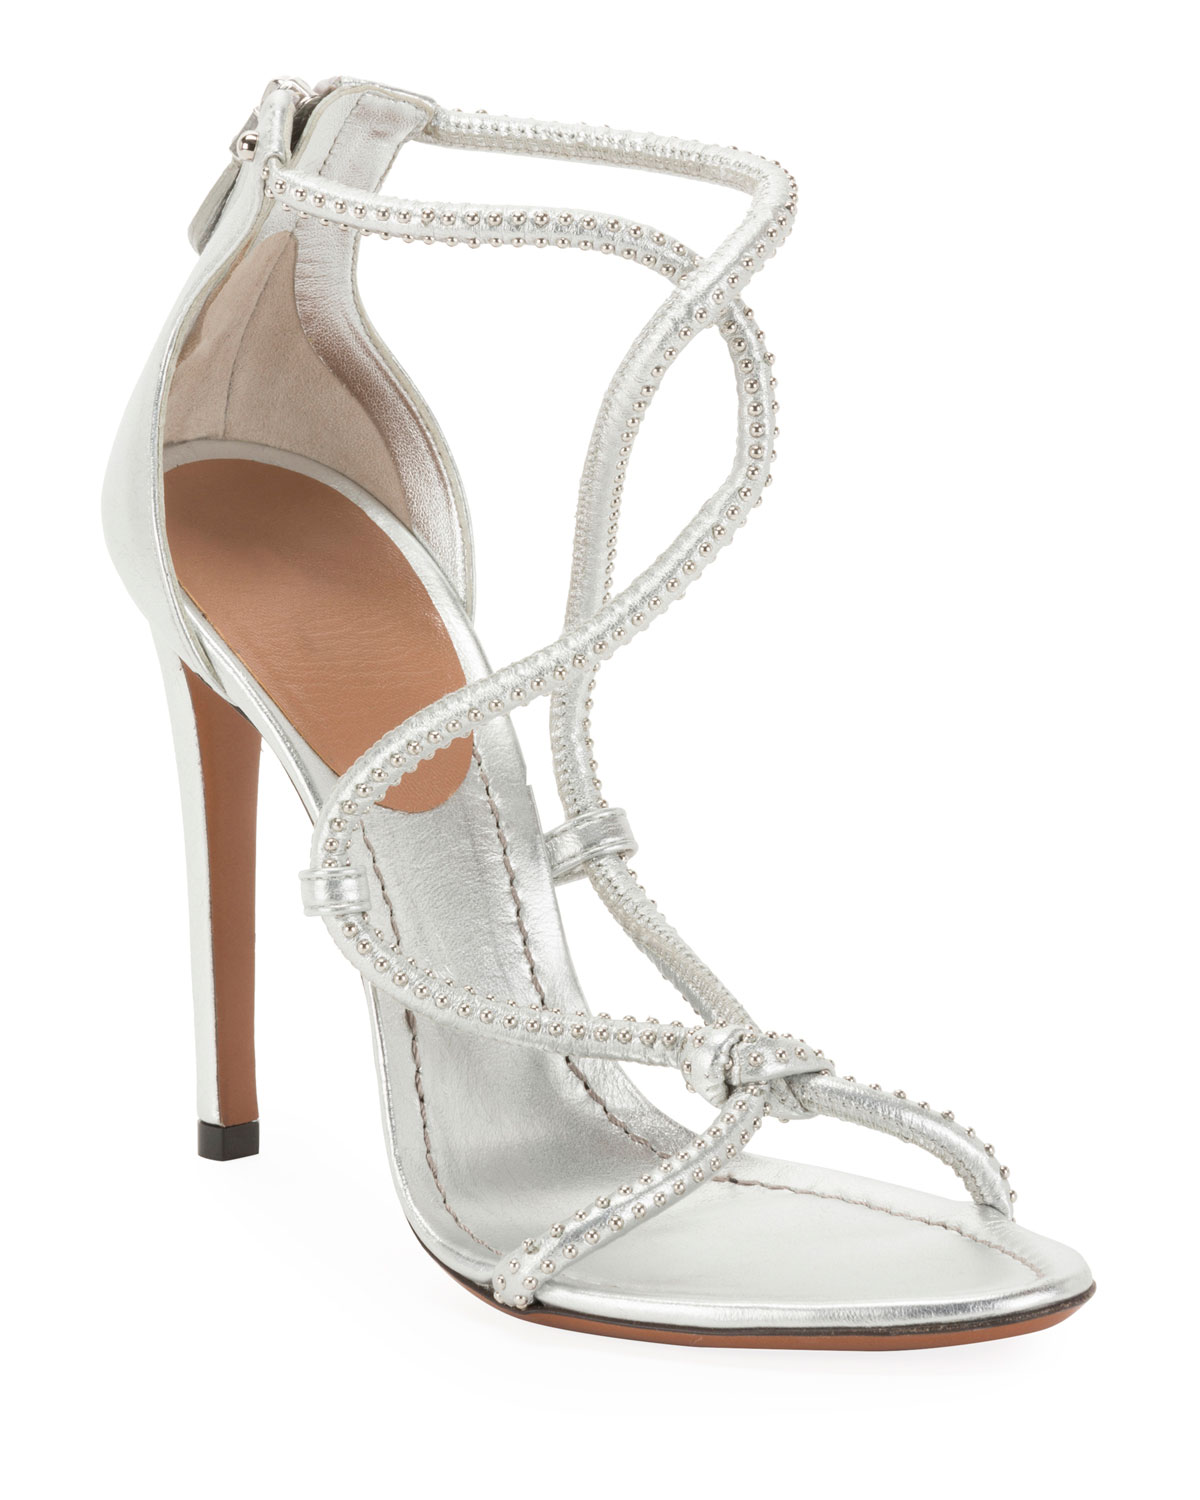 ALAÏA Twisted Studded Metallic Leather Sandals in Gray